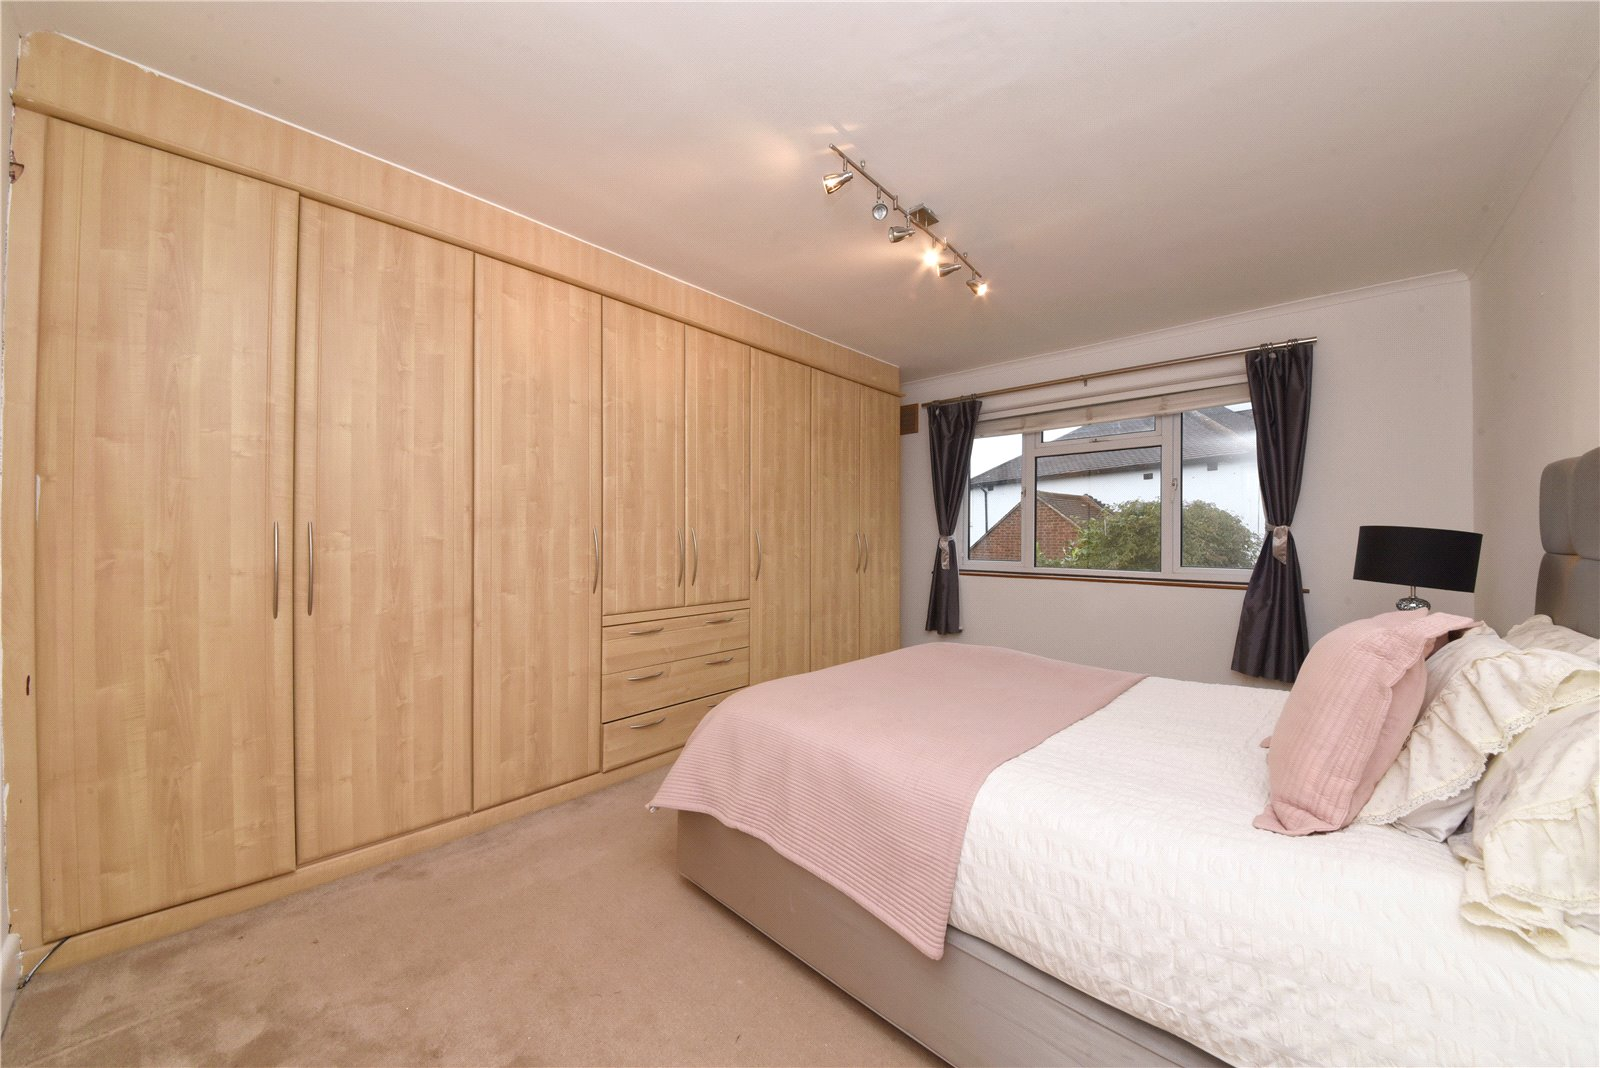 3 bed house for sale in High Barnet, EN5 1AL 3